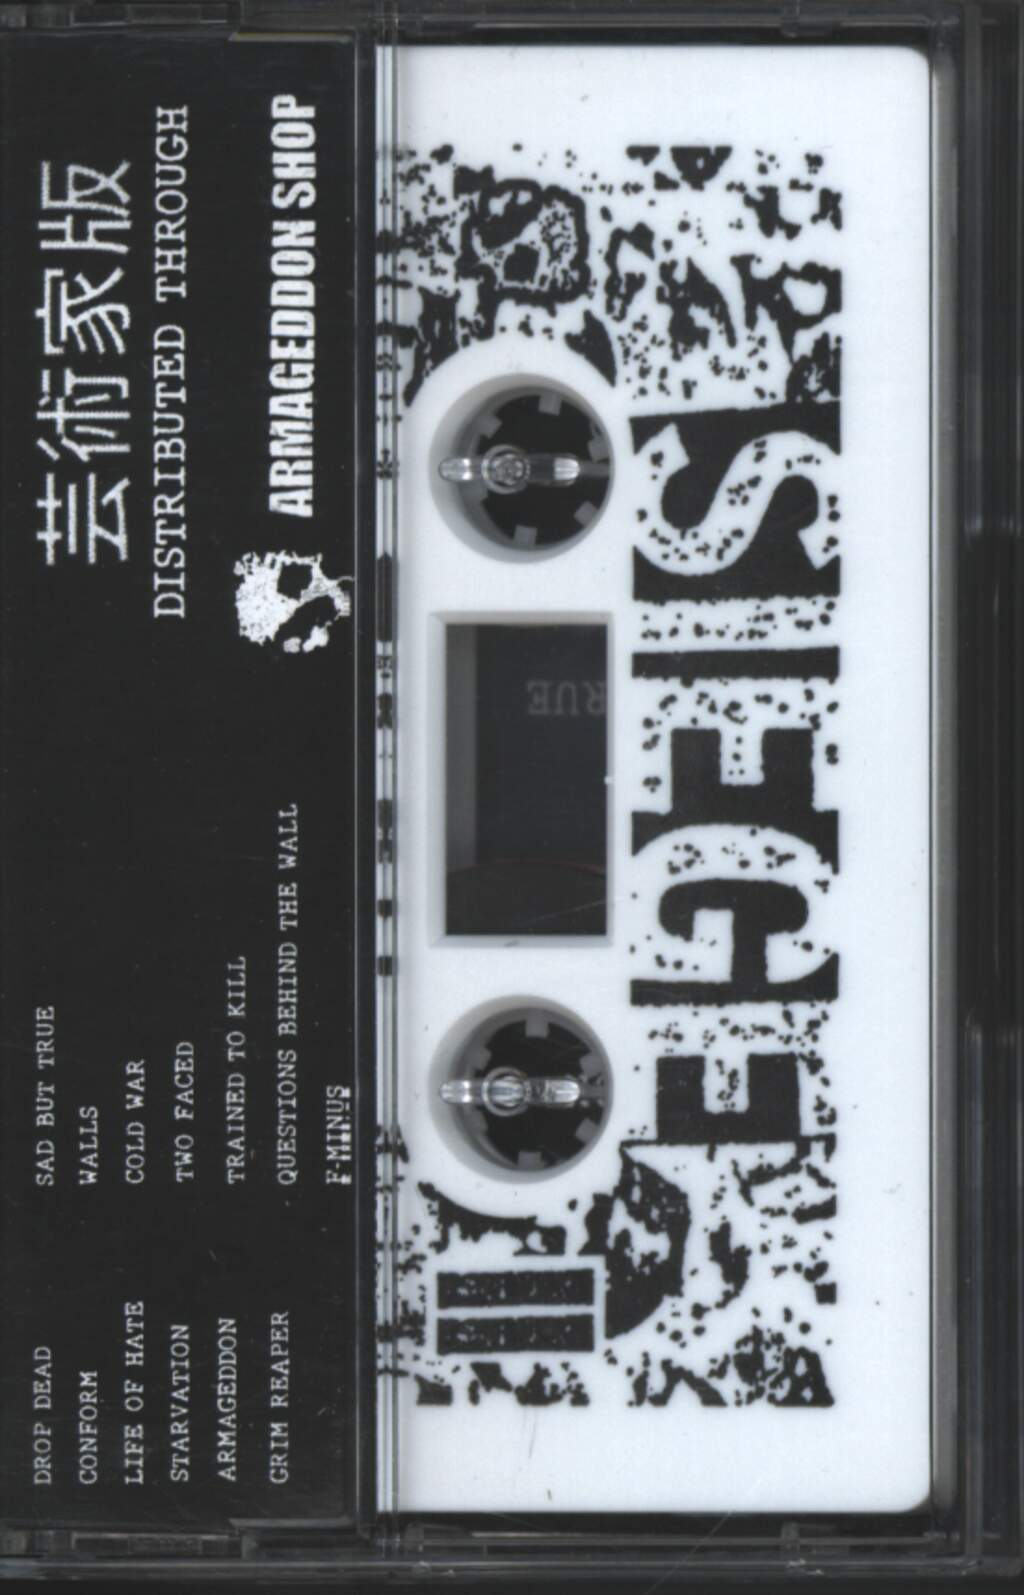 Siege: Drop Dead 30th Anniversary Edition, Tape